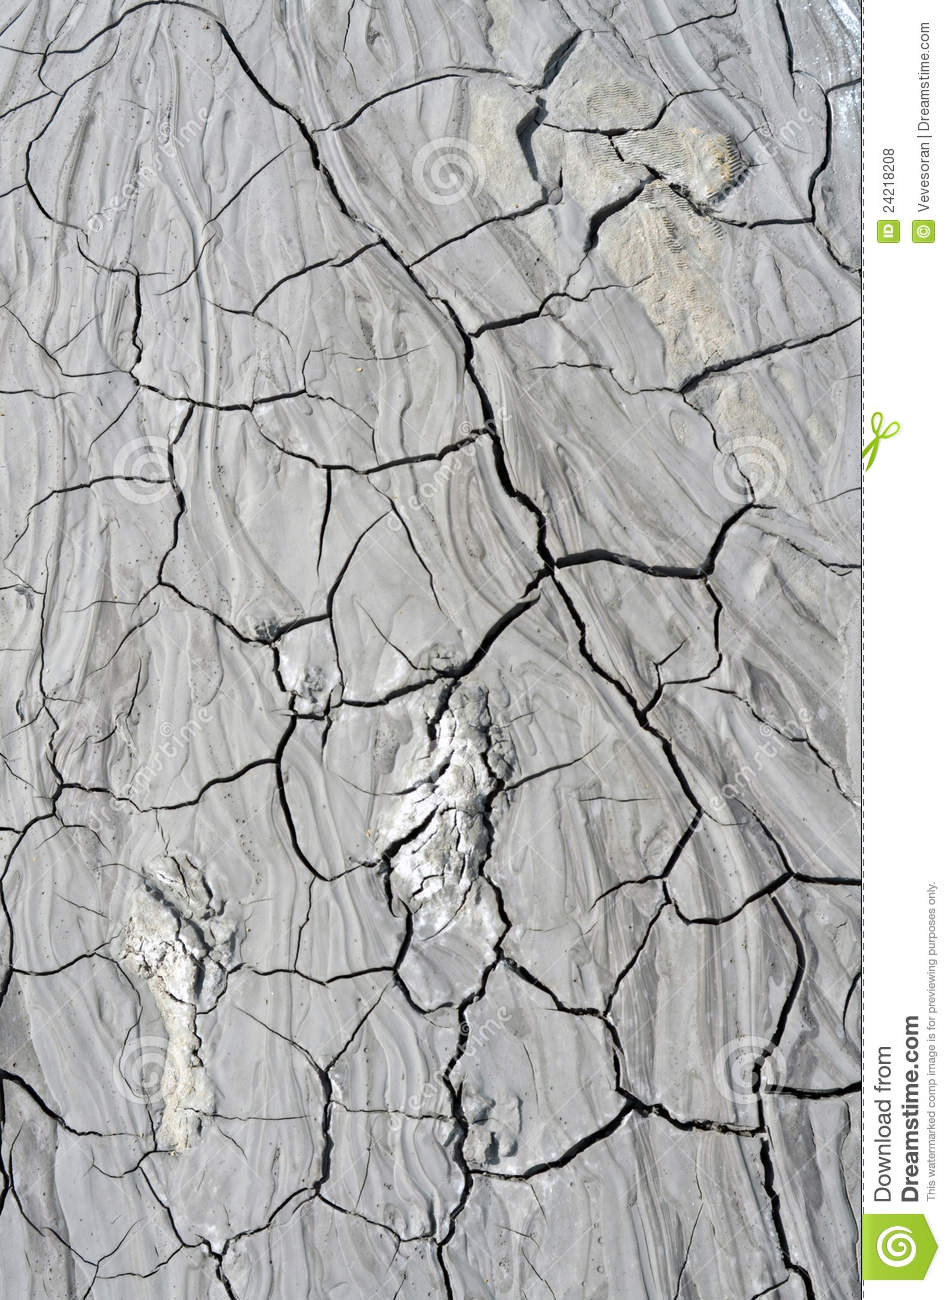 Soil details royalty free stock photos image 24218208 for Soil details